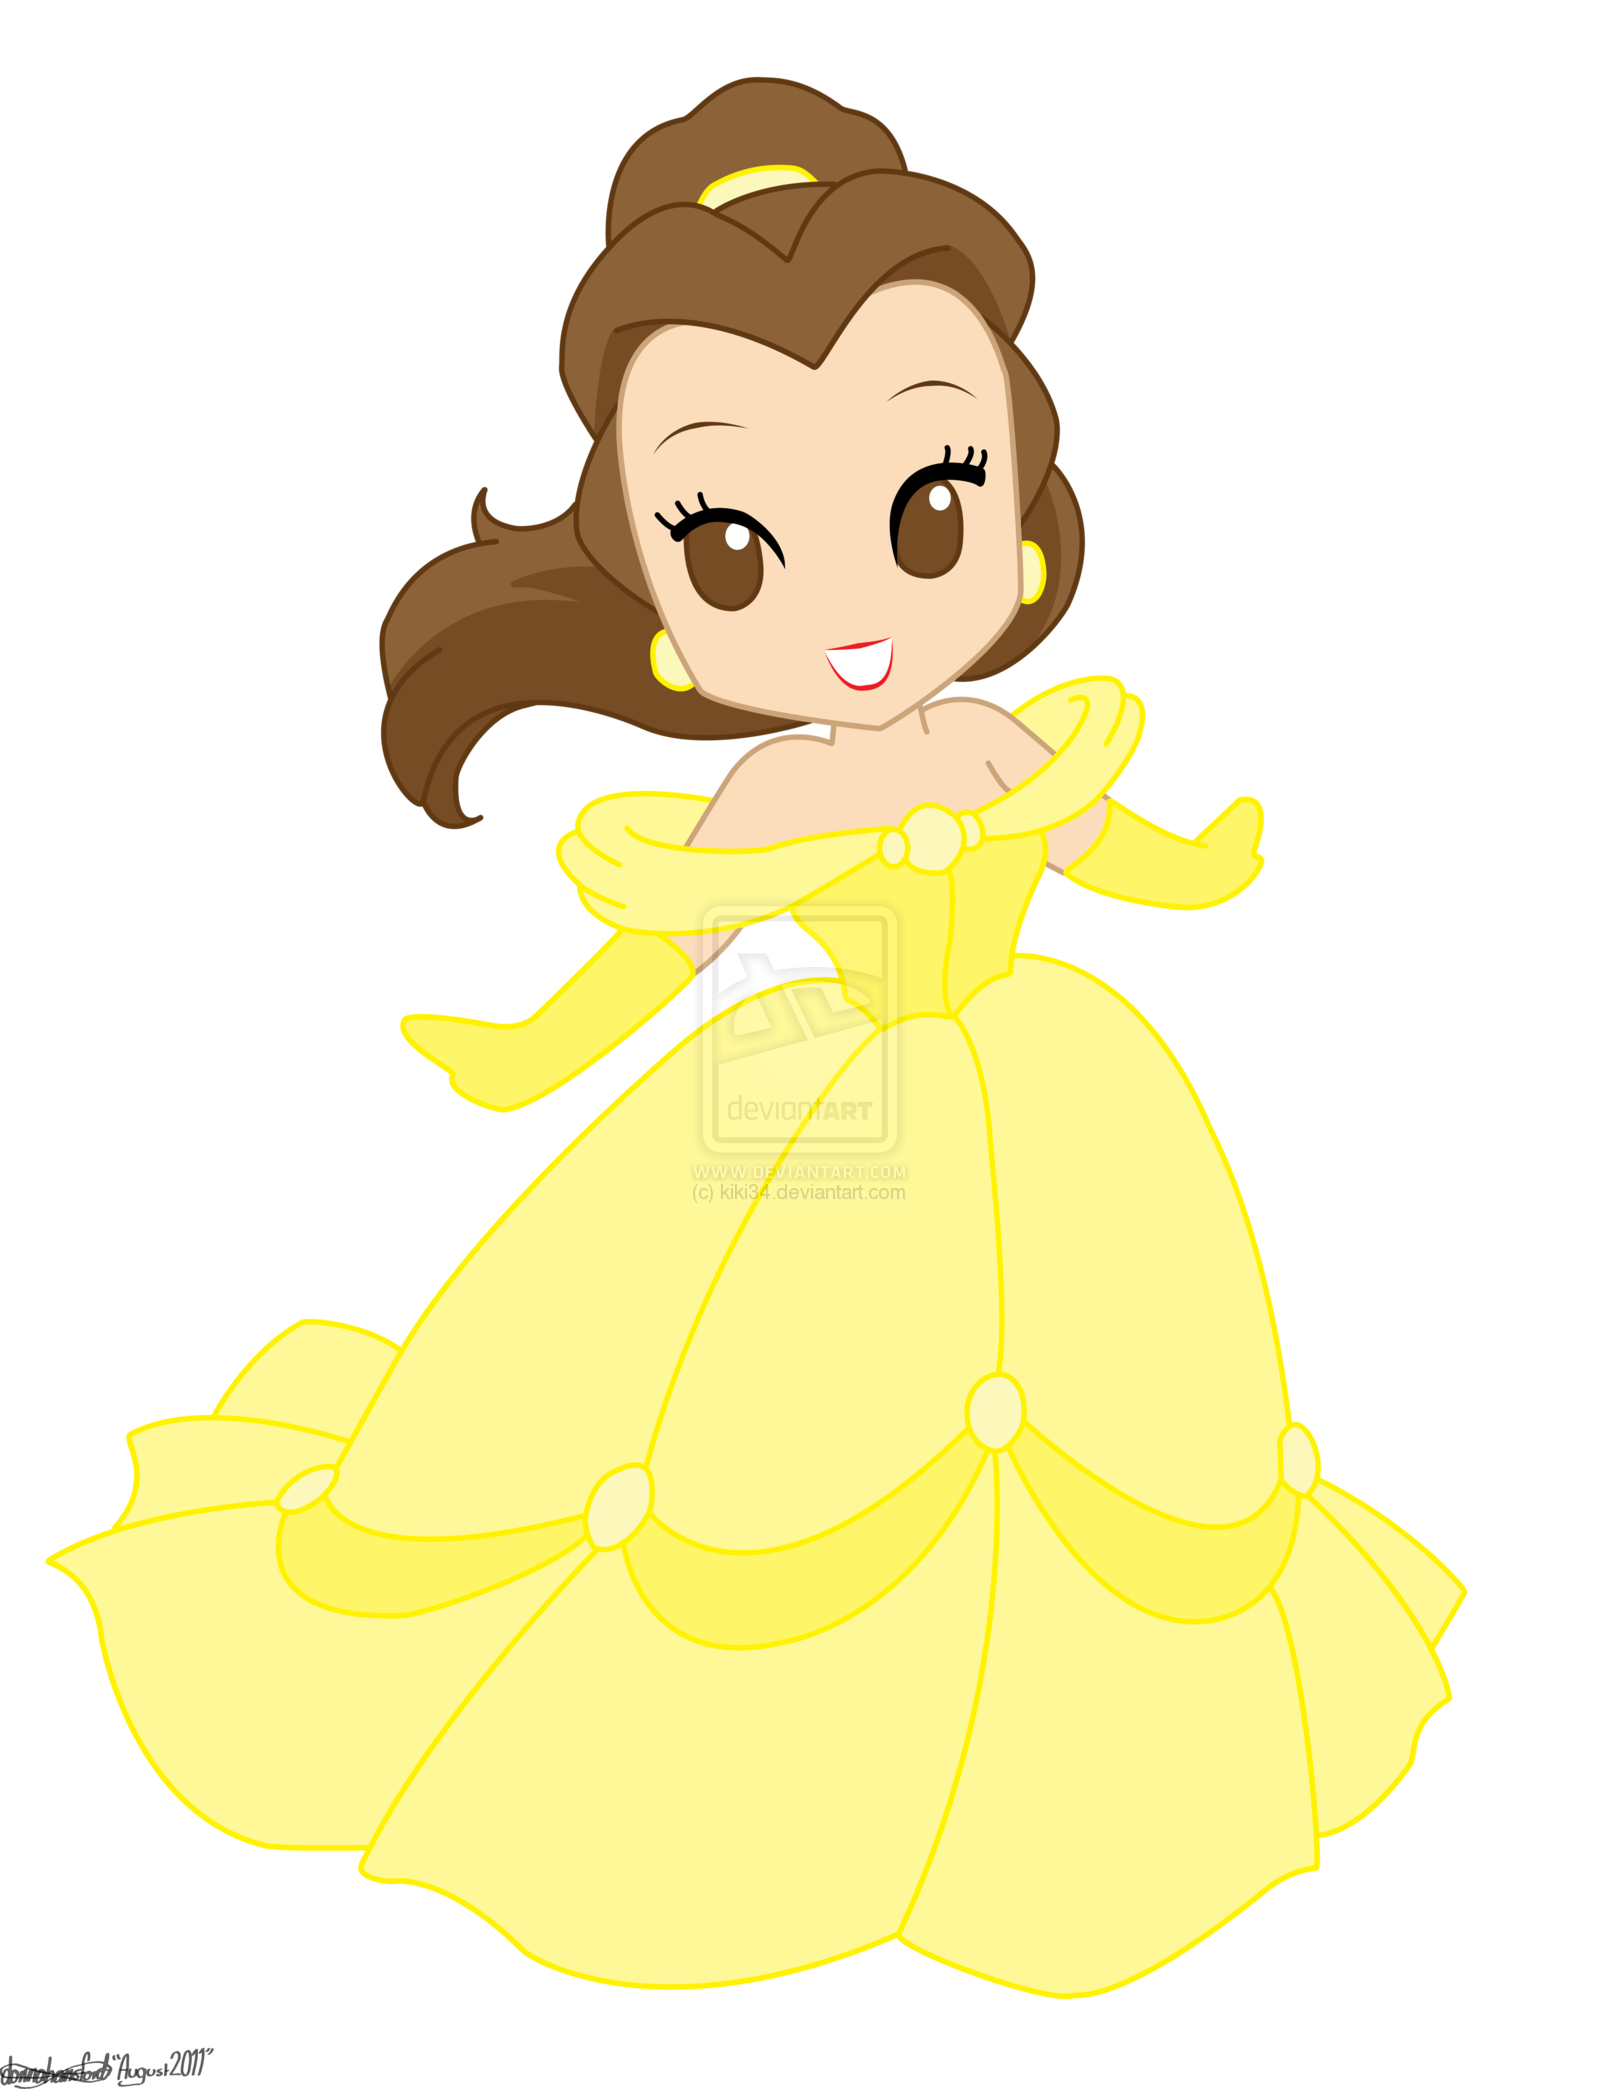 jpg Chibi Disney Princesses Drawings Disney princess belle by